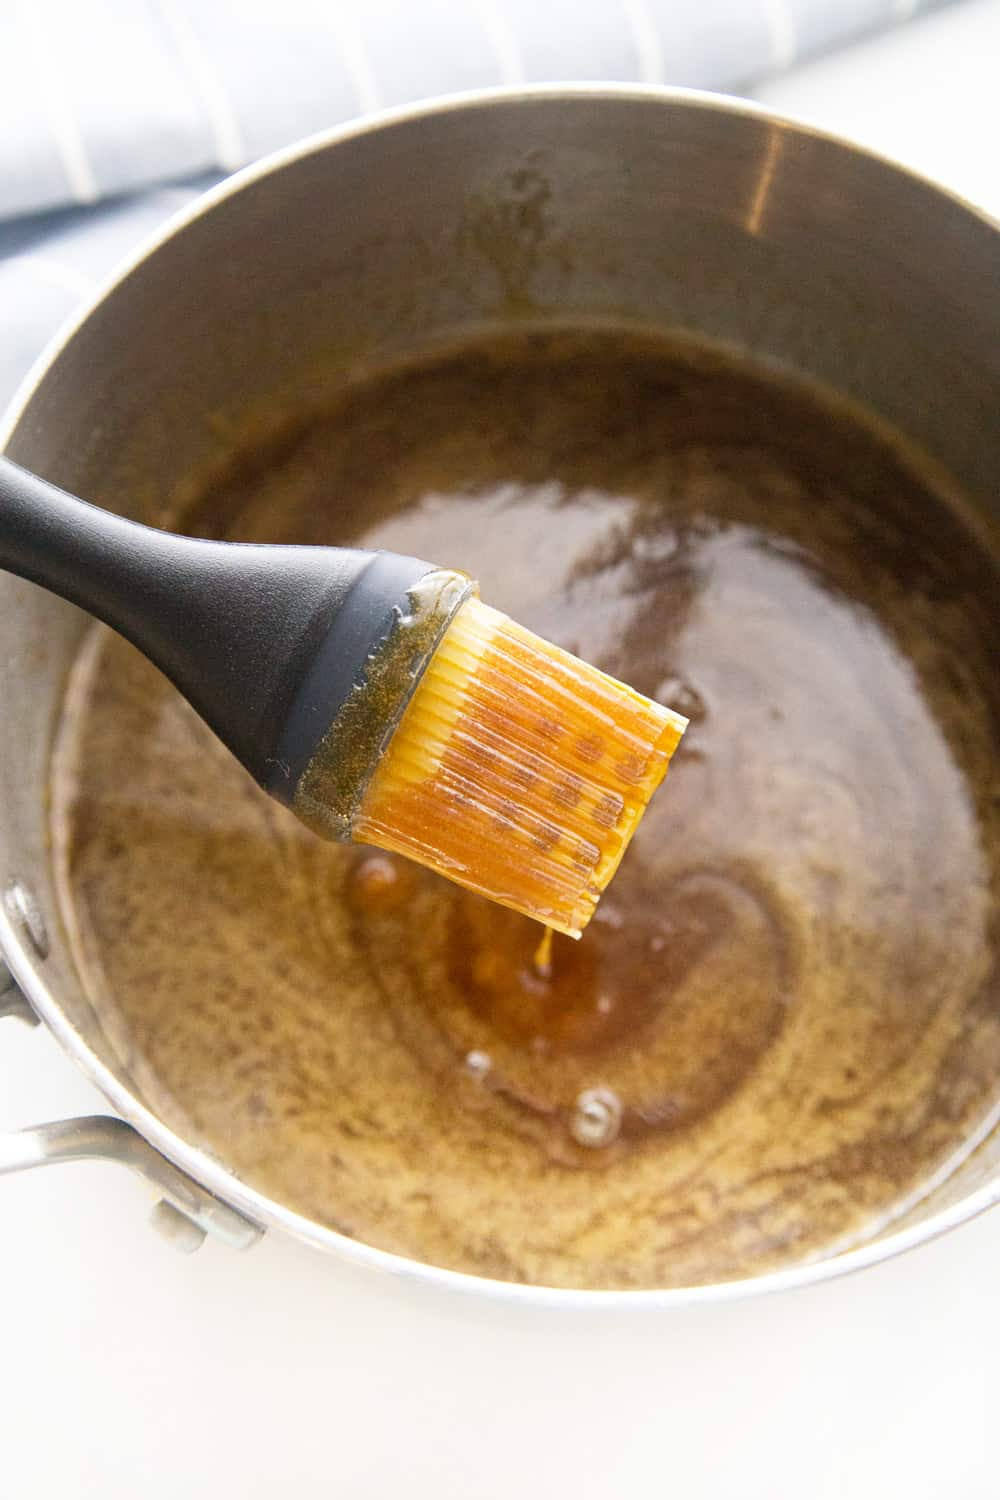 honey glaze dripping off a pastry brush into a metal pan